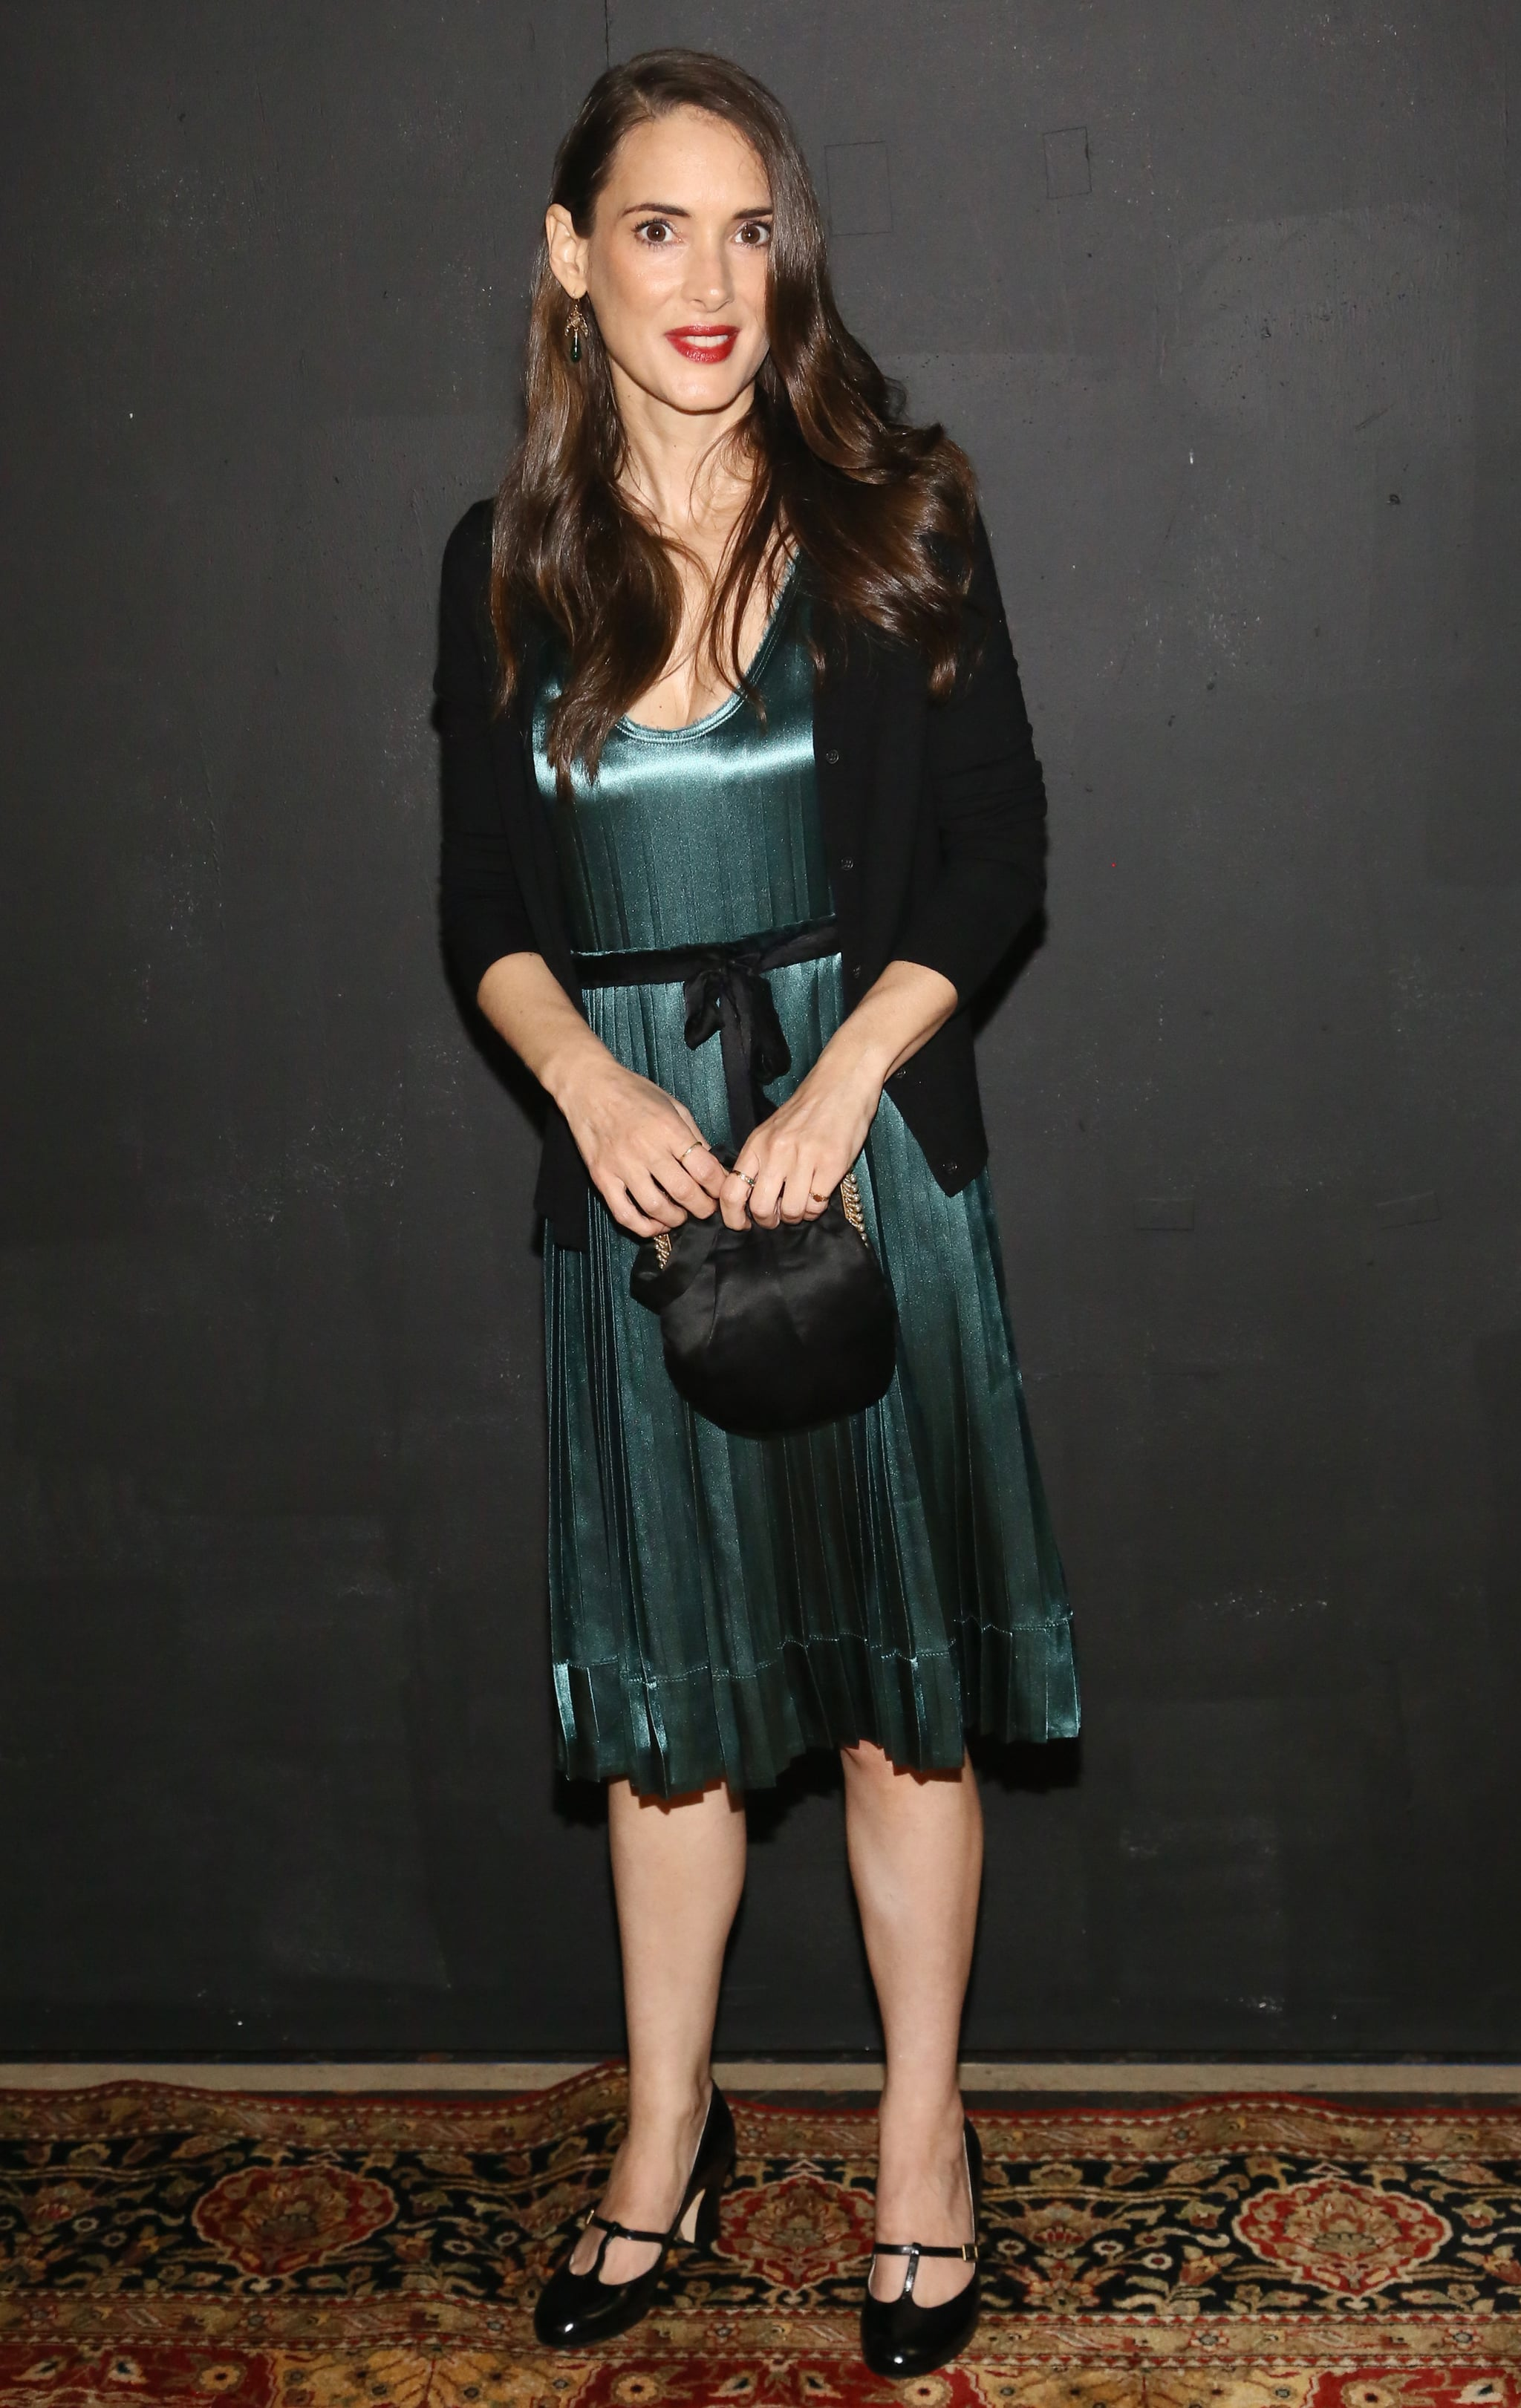 Winona Ryder showed her support for Marc Jacobs in a silky pleated green dress and a black cardigan.